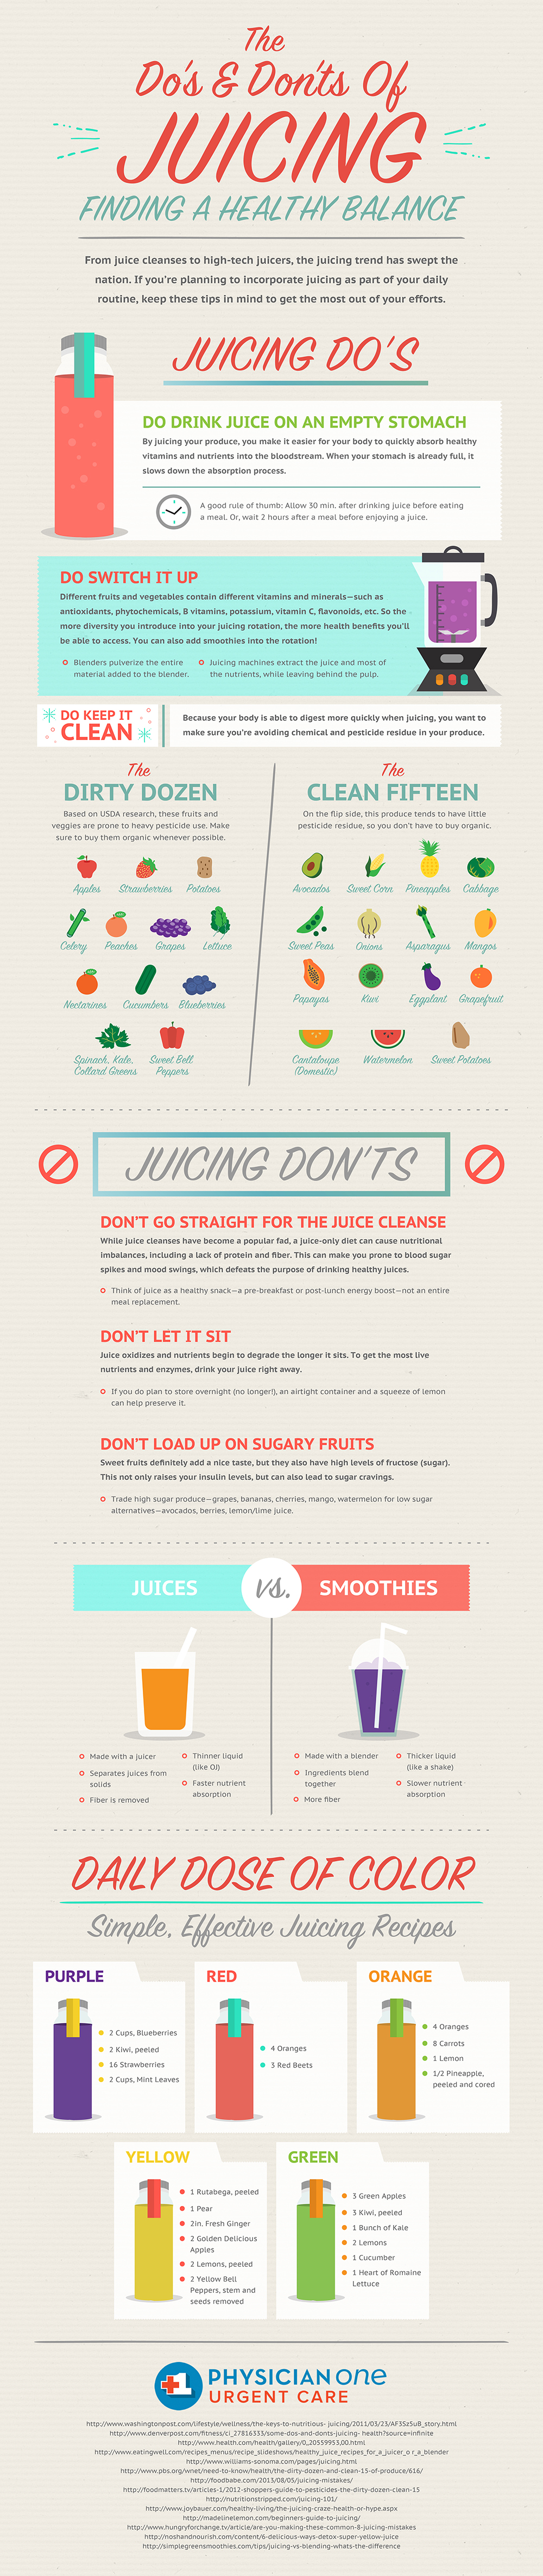 DO's and DON'Ts of Juicing